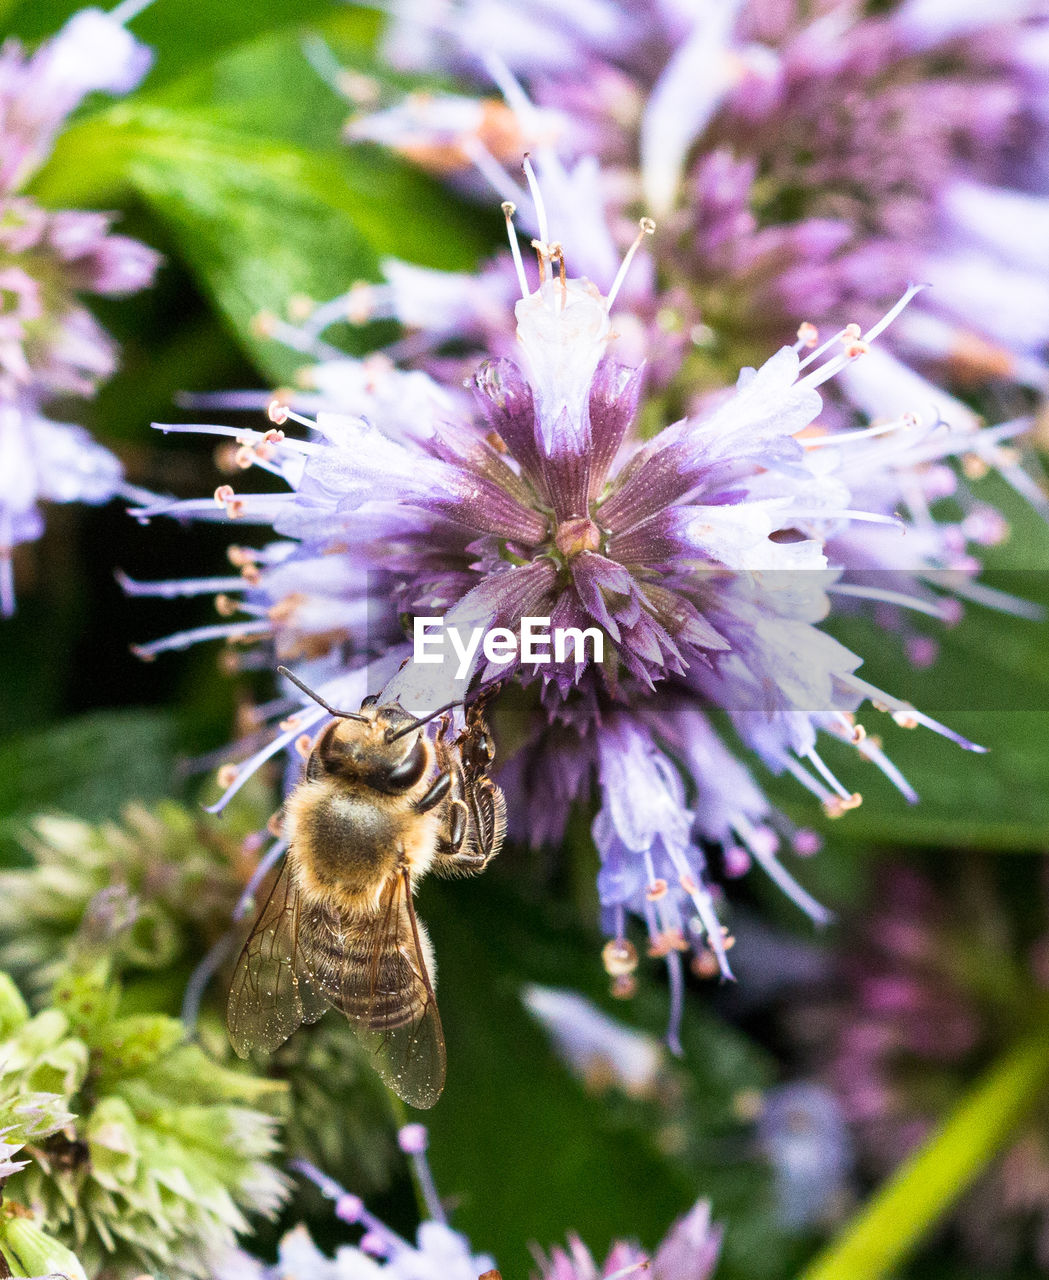 flower, insect, bee, fragility, nature, pollination, growth, animals in the wild, animal themes, one animal, no people, focus on foreground, plant, freshness, beauty in nature, day, close-up, outdoors, flower head, buzzing